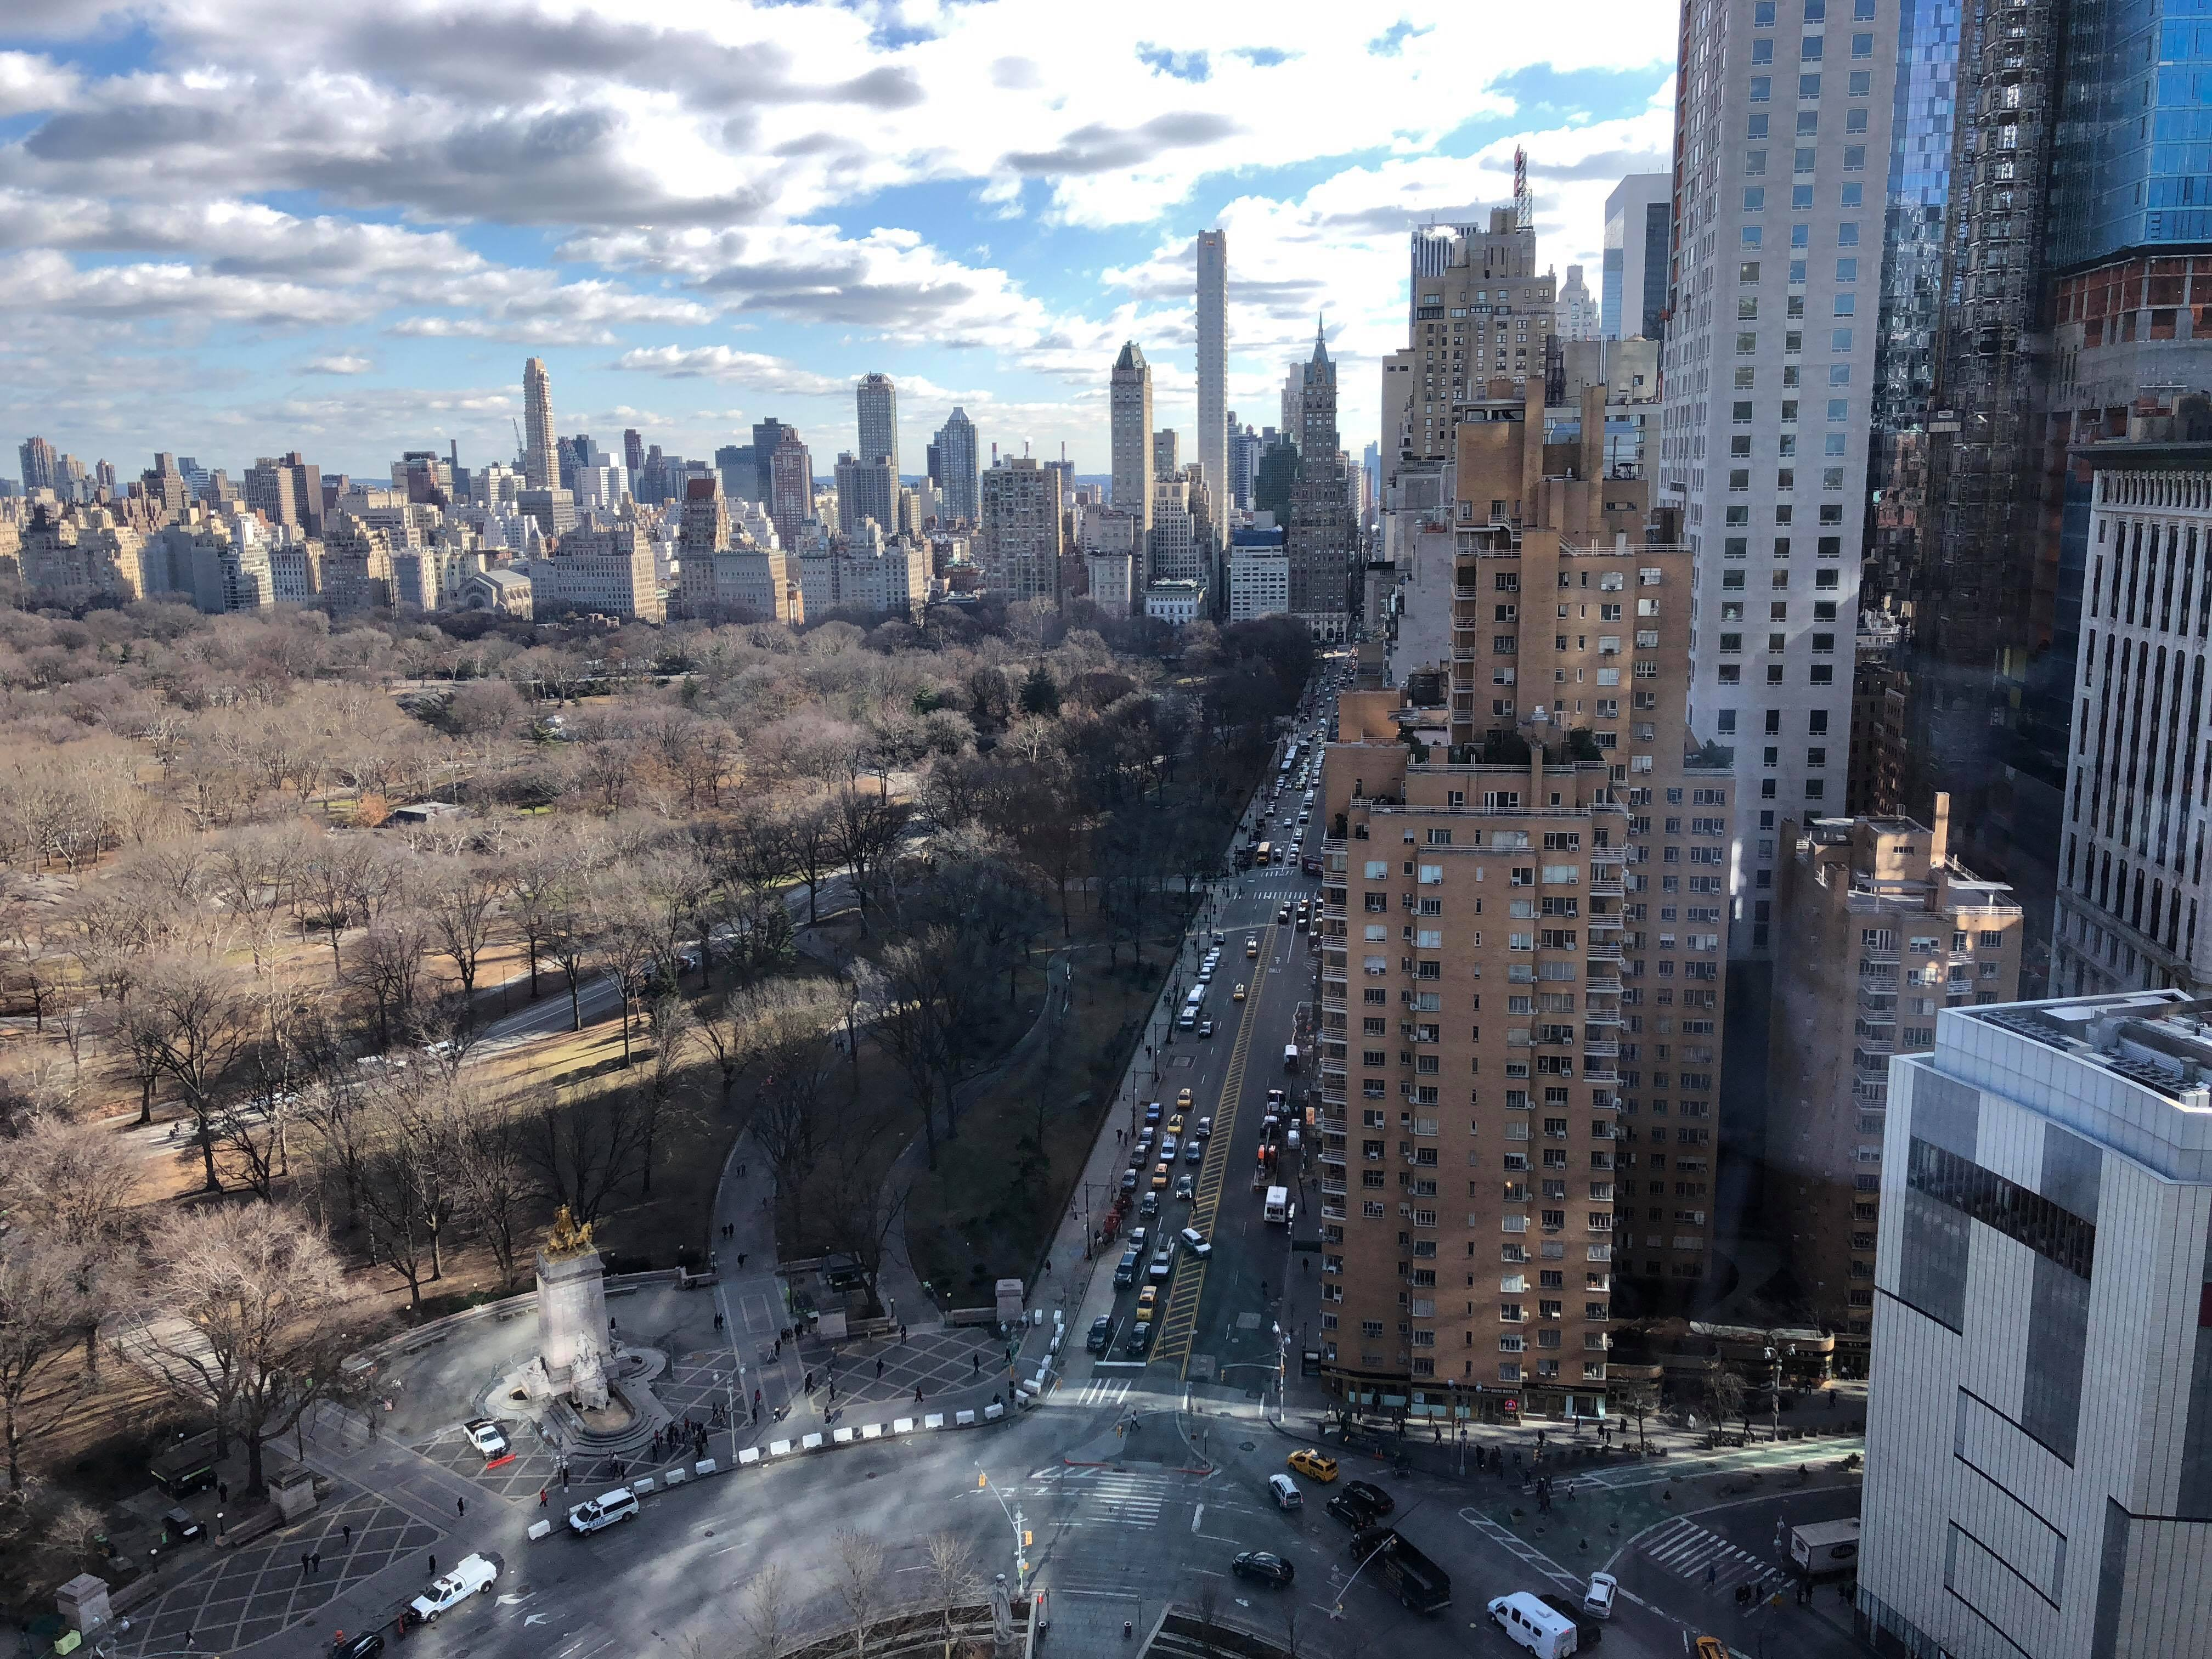 A portion of the beautiful 360-degree view of Central Park from Turner's cafeteria